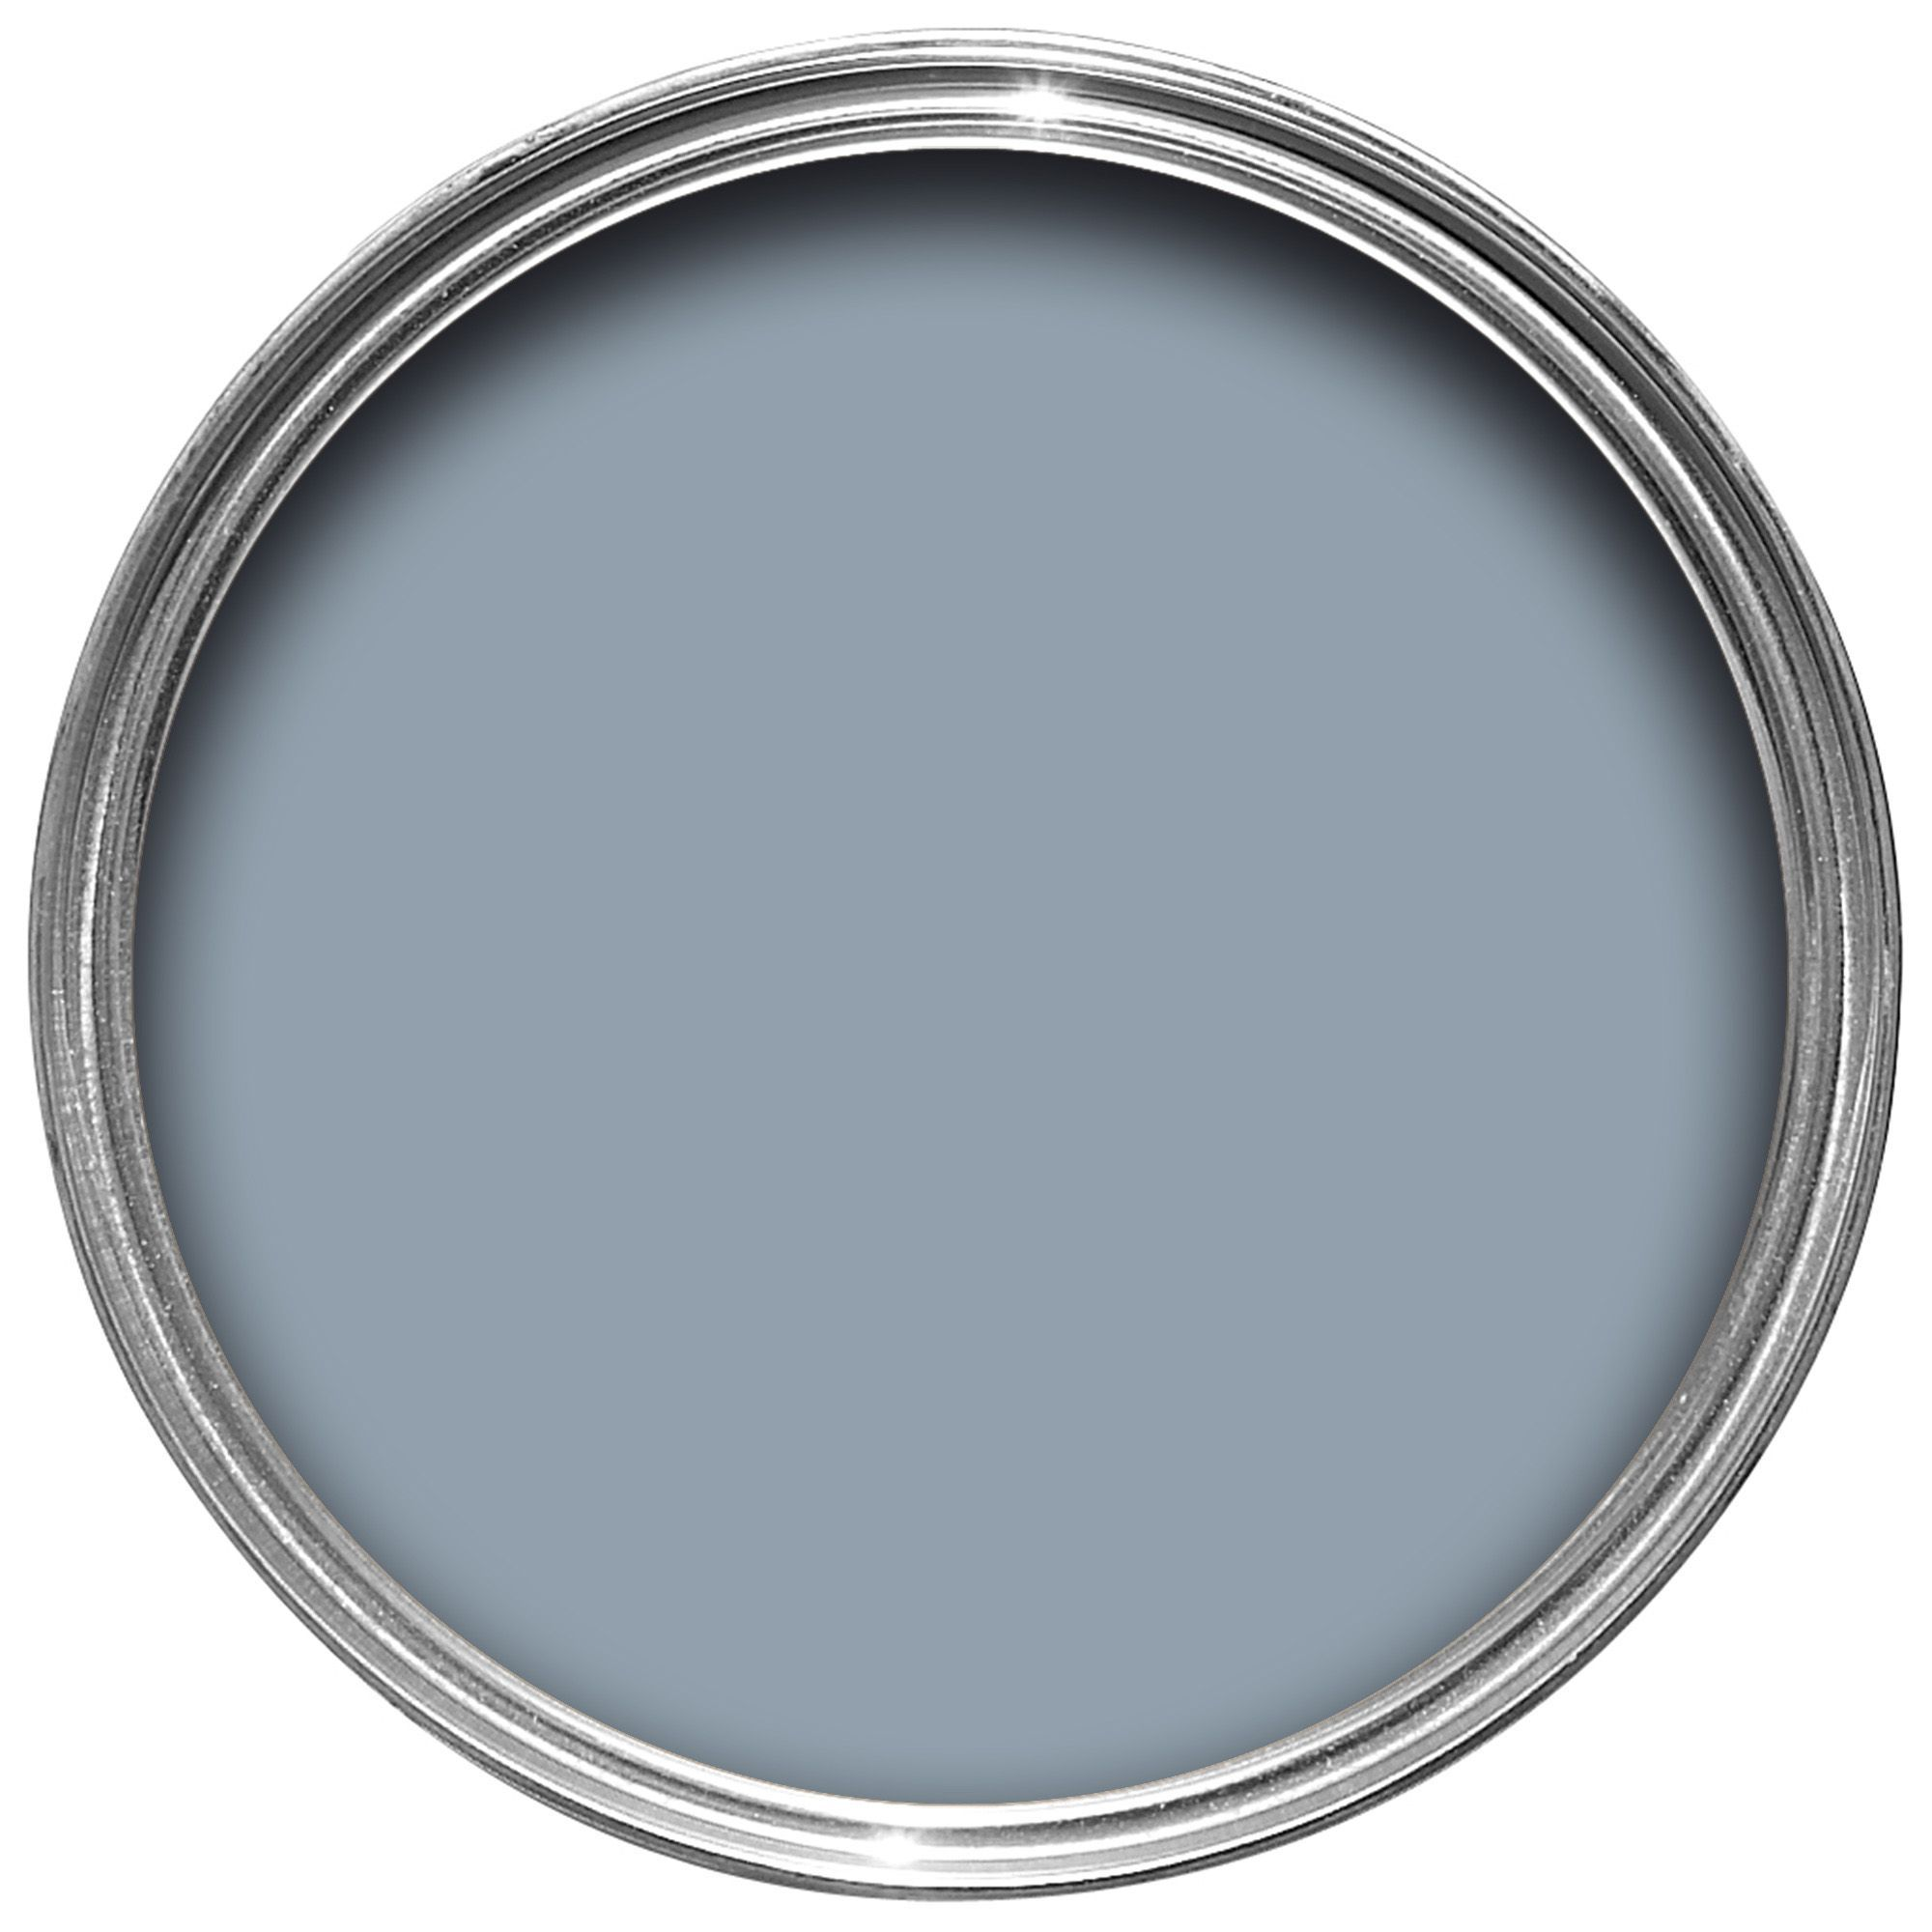 Diy supplies accessories diy at b q - Dulux Weathershield Exterior Glade Green Satin Paint B Q For All Your Home And Garden Supplies And Advice On All The Latest Diy Trends